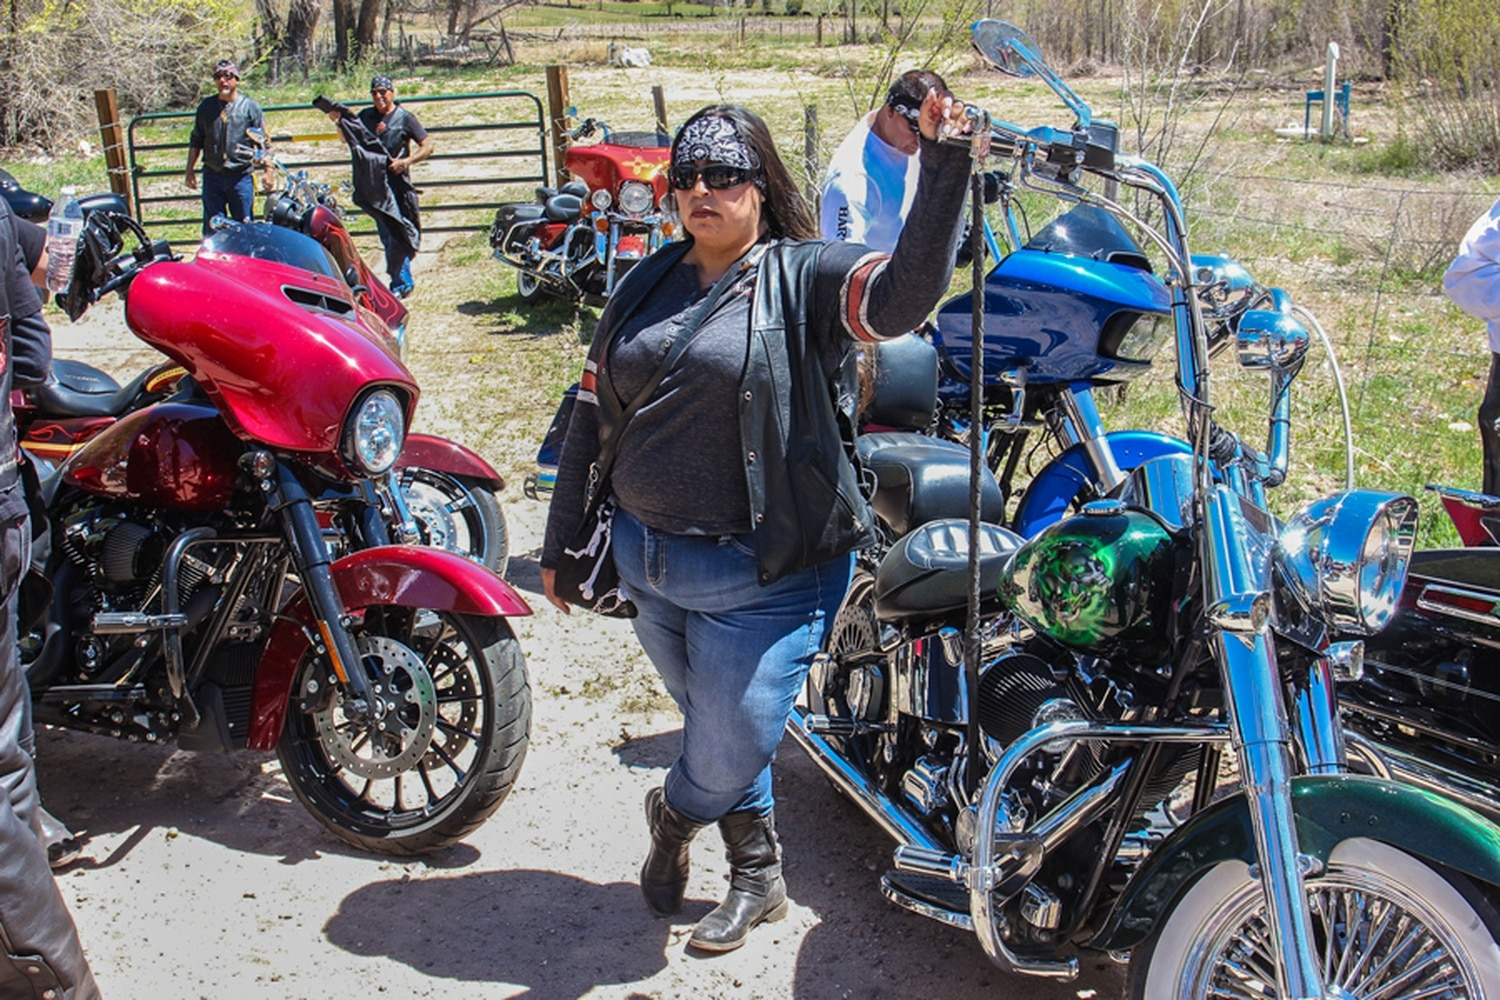 Dubie Smith, born and raised in Santa Fe, rode in with her husband and 18 others in support of a friend.